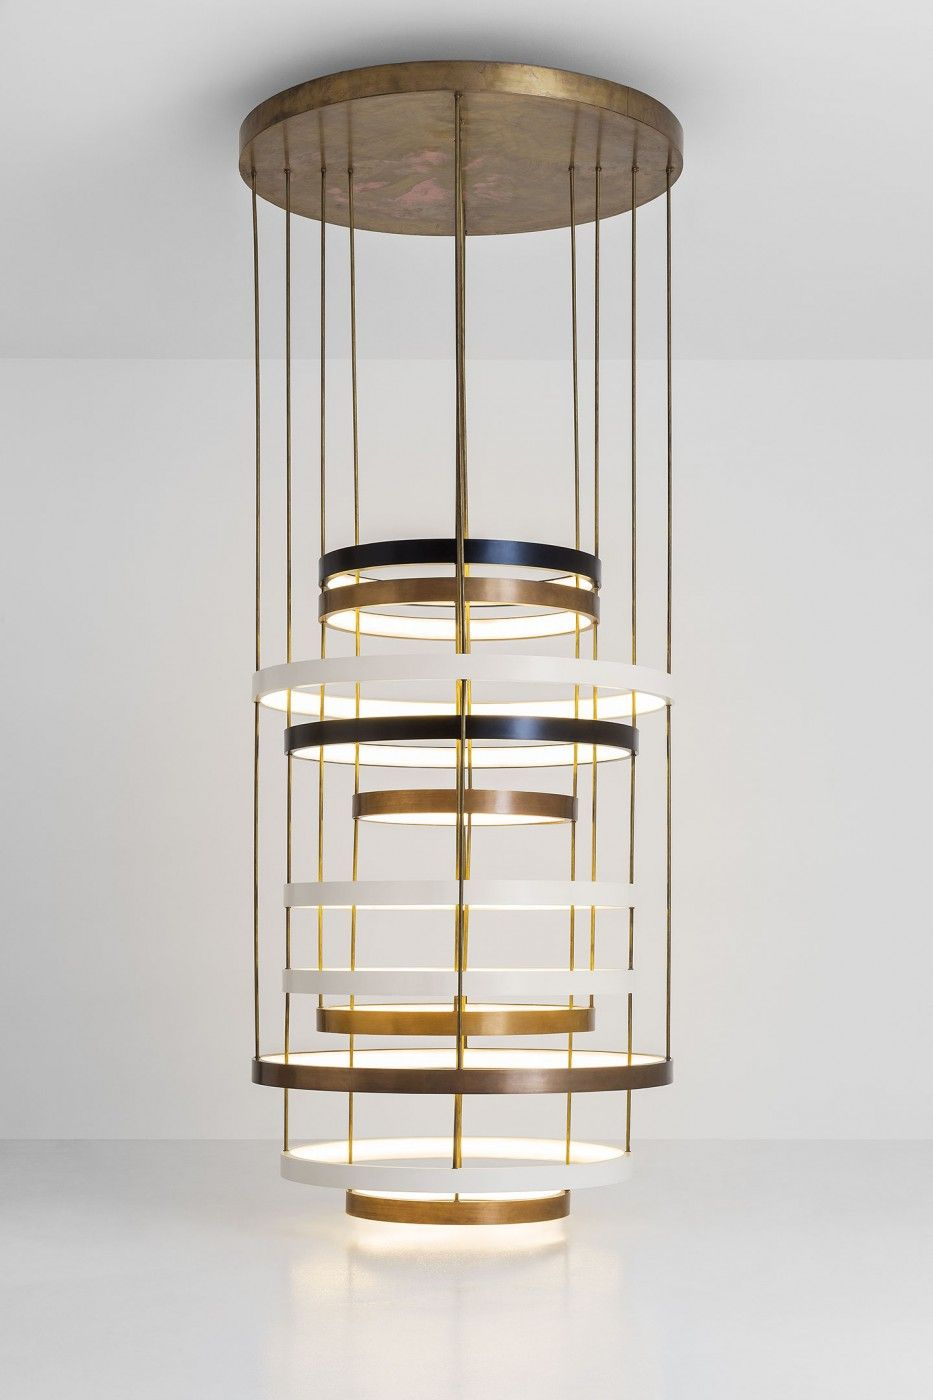 Dimore Studio Chandelier of layered bands multiple metal